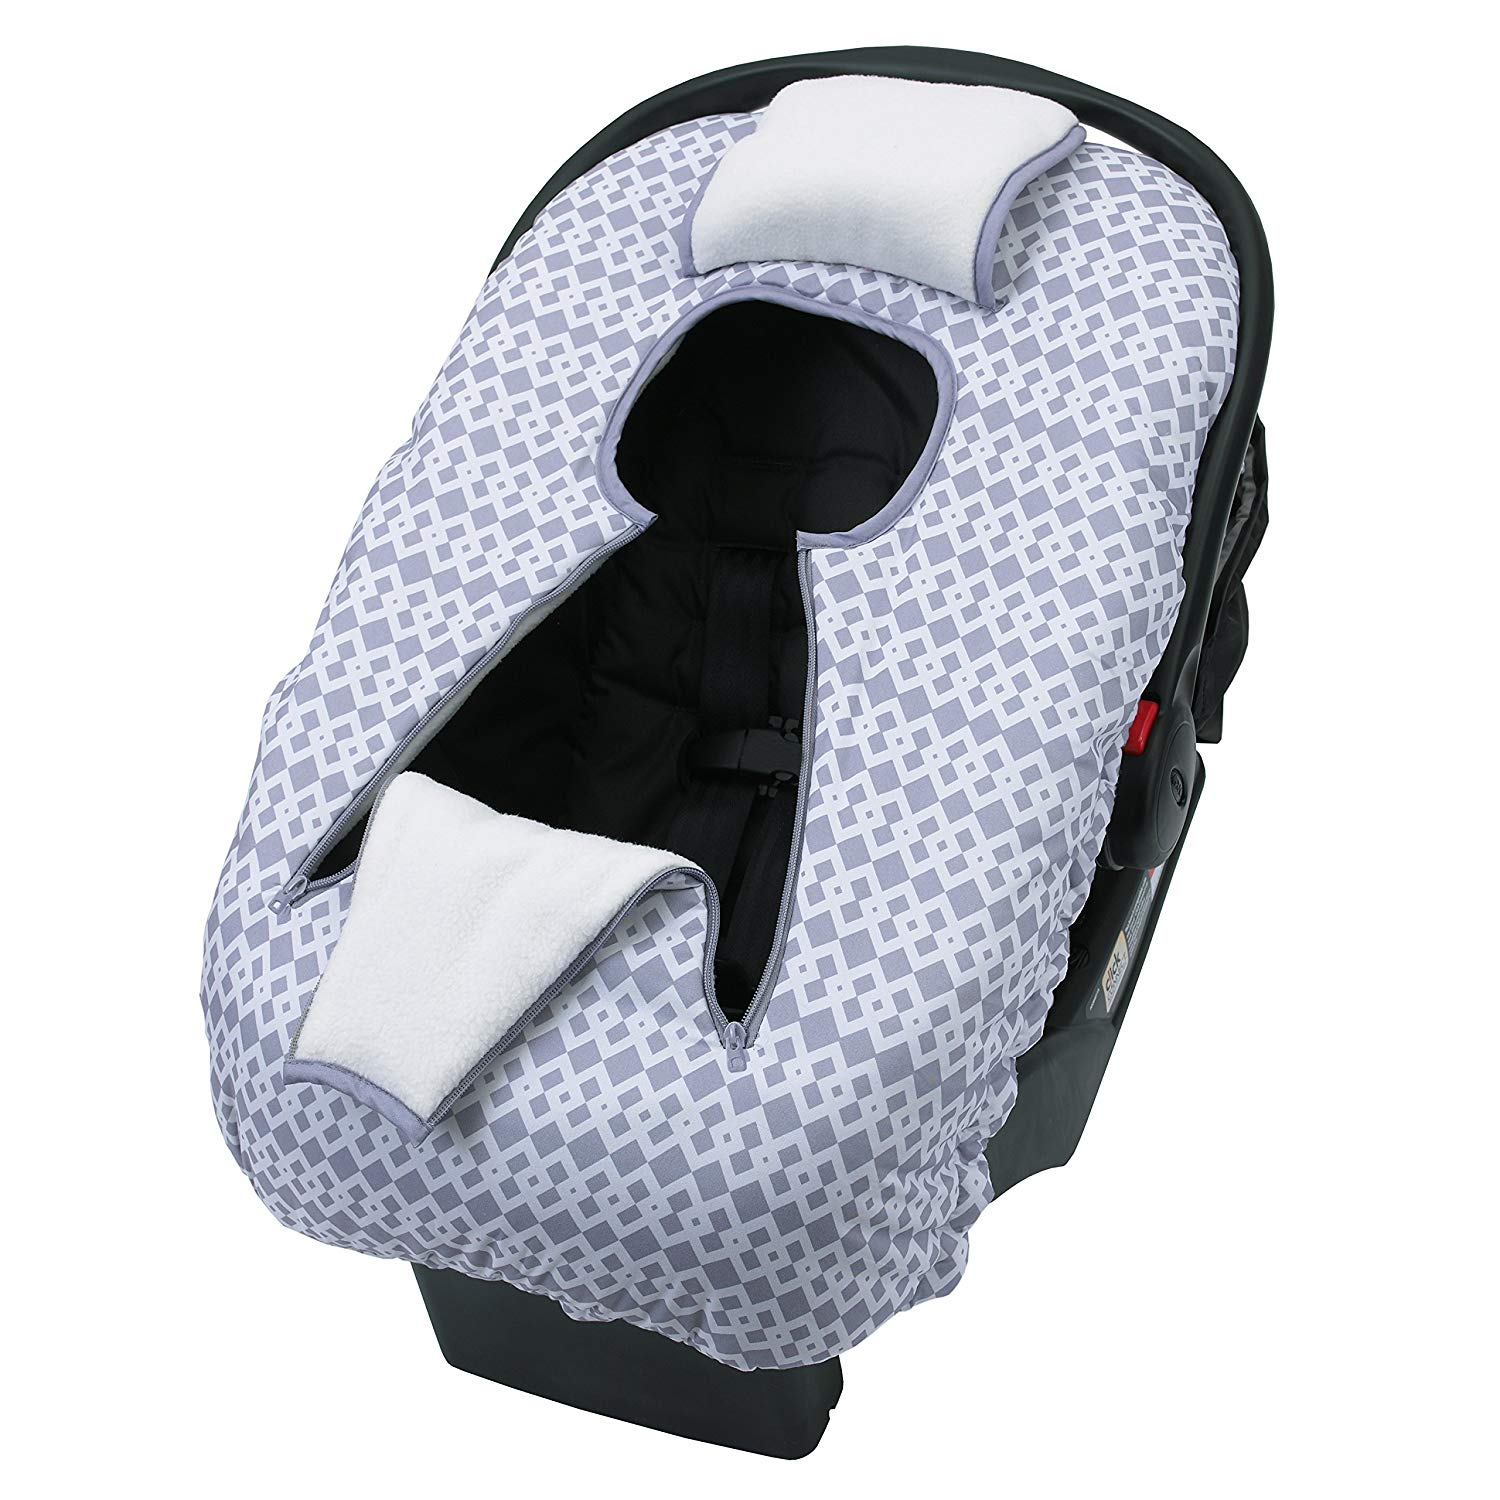 NoJo On The Go Baby Car Seat Cover-Up, Gray/White